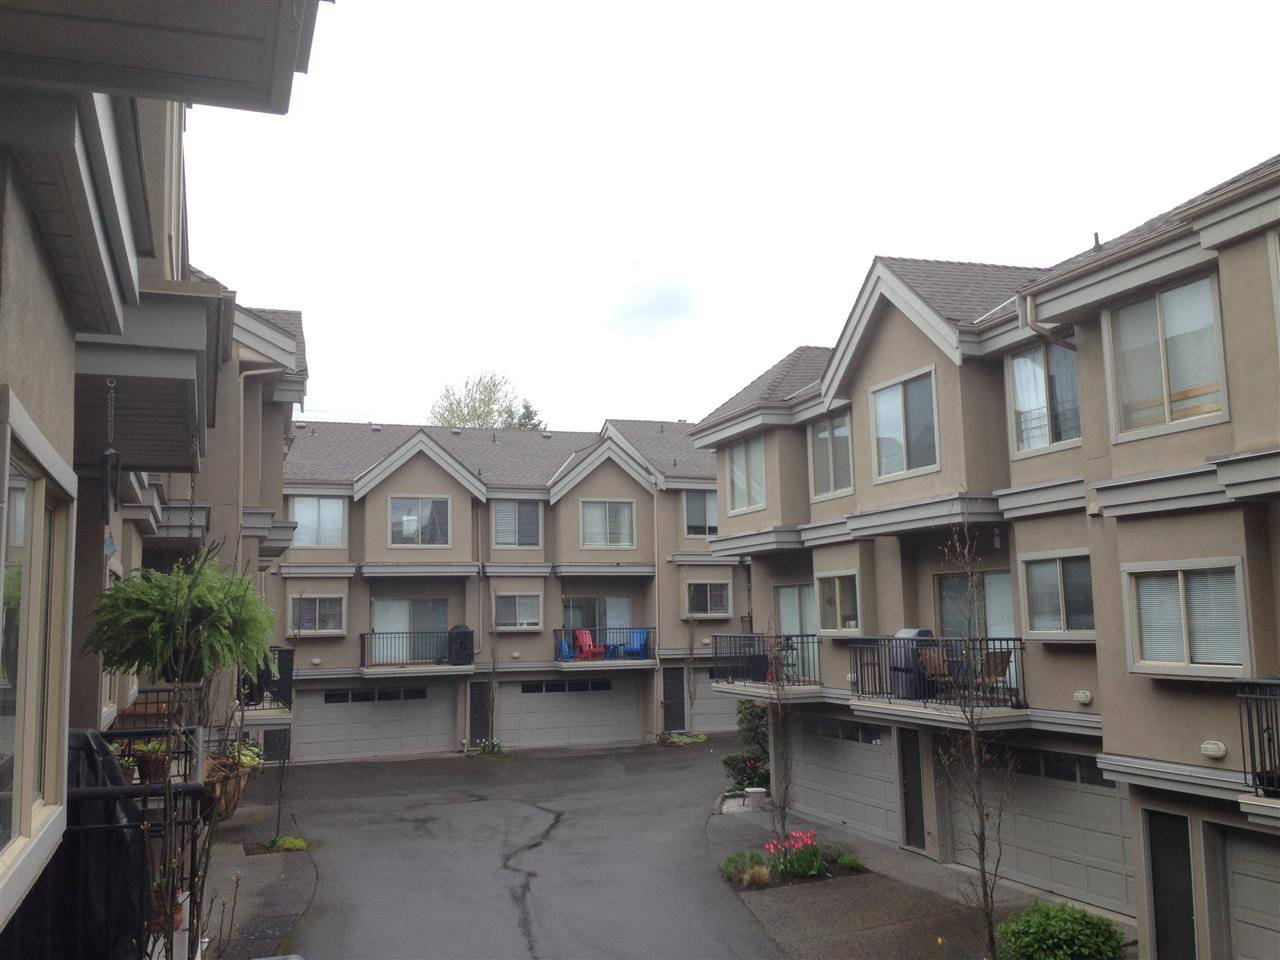 Photo 13: Photos: 15431 RUSSELL Avenue: White Rock Townhouse for sale (South Surrey White Rock)  : MLS®# R2154602